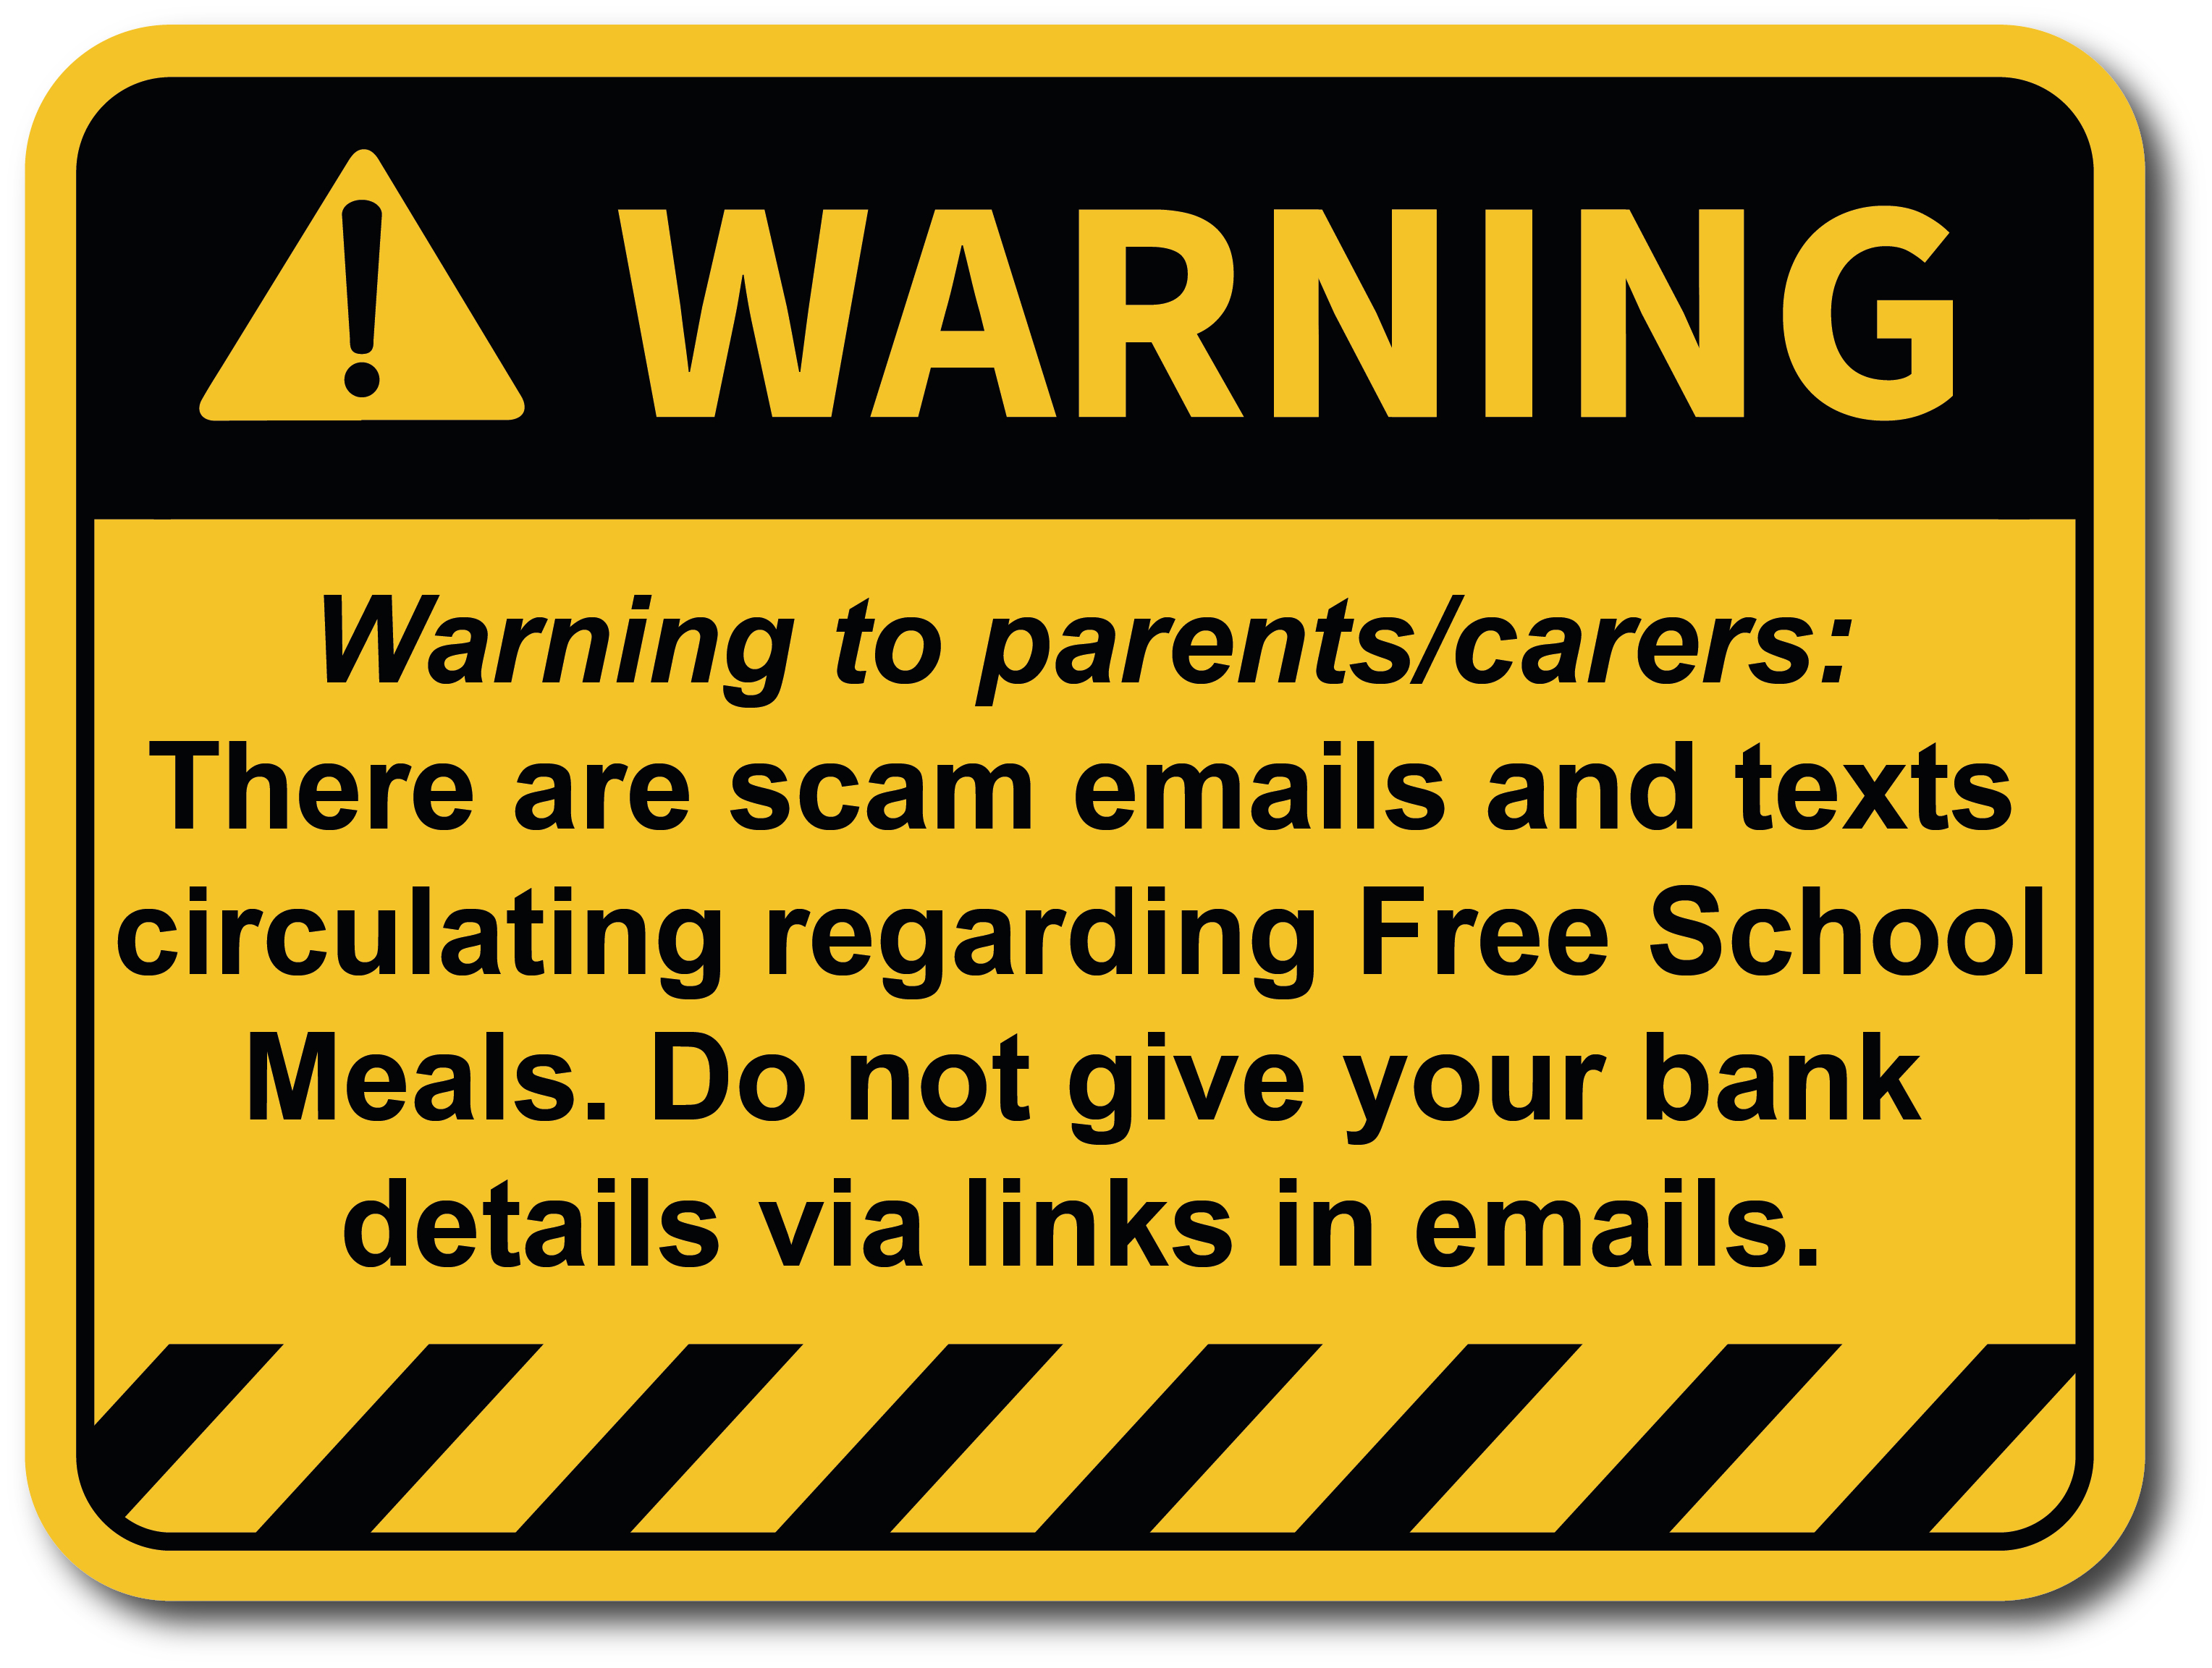 There are scam emails and texts circulating regarding Free School Meals.